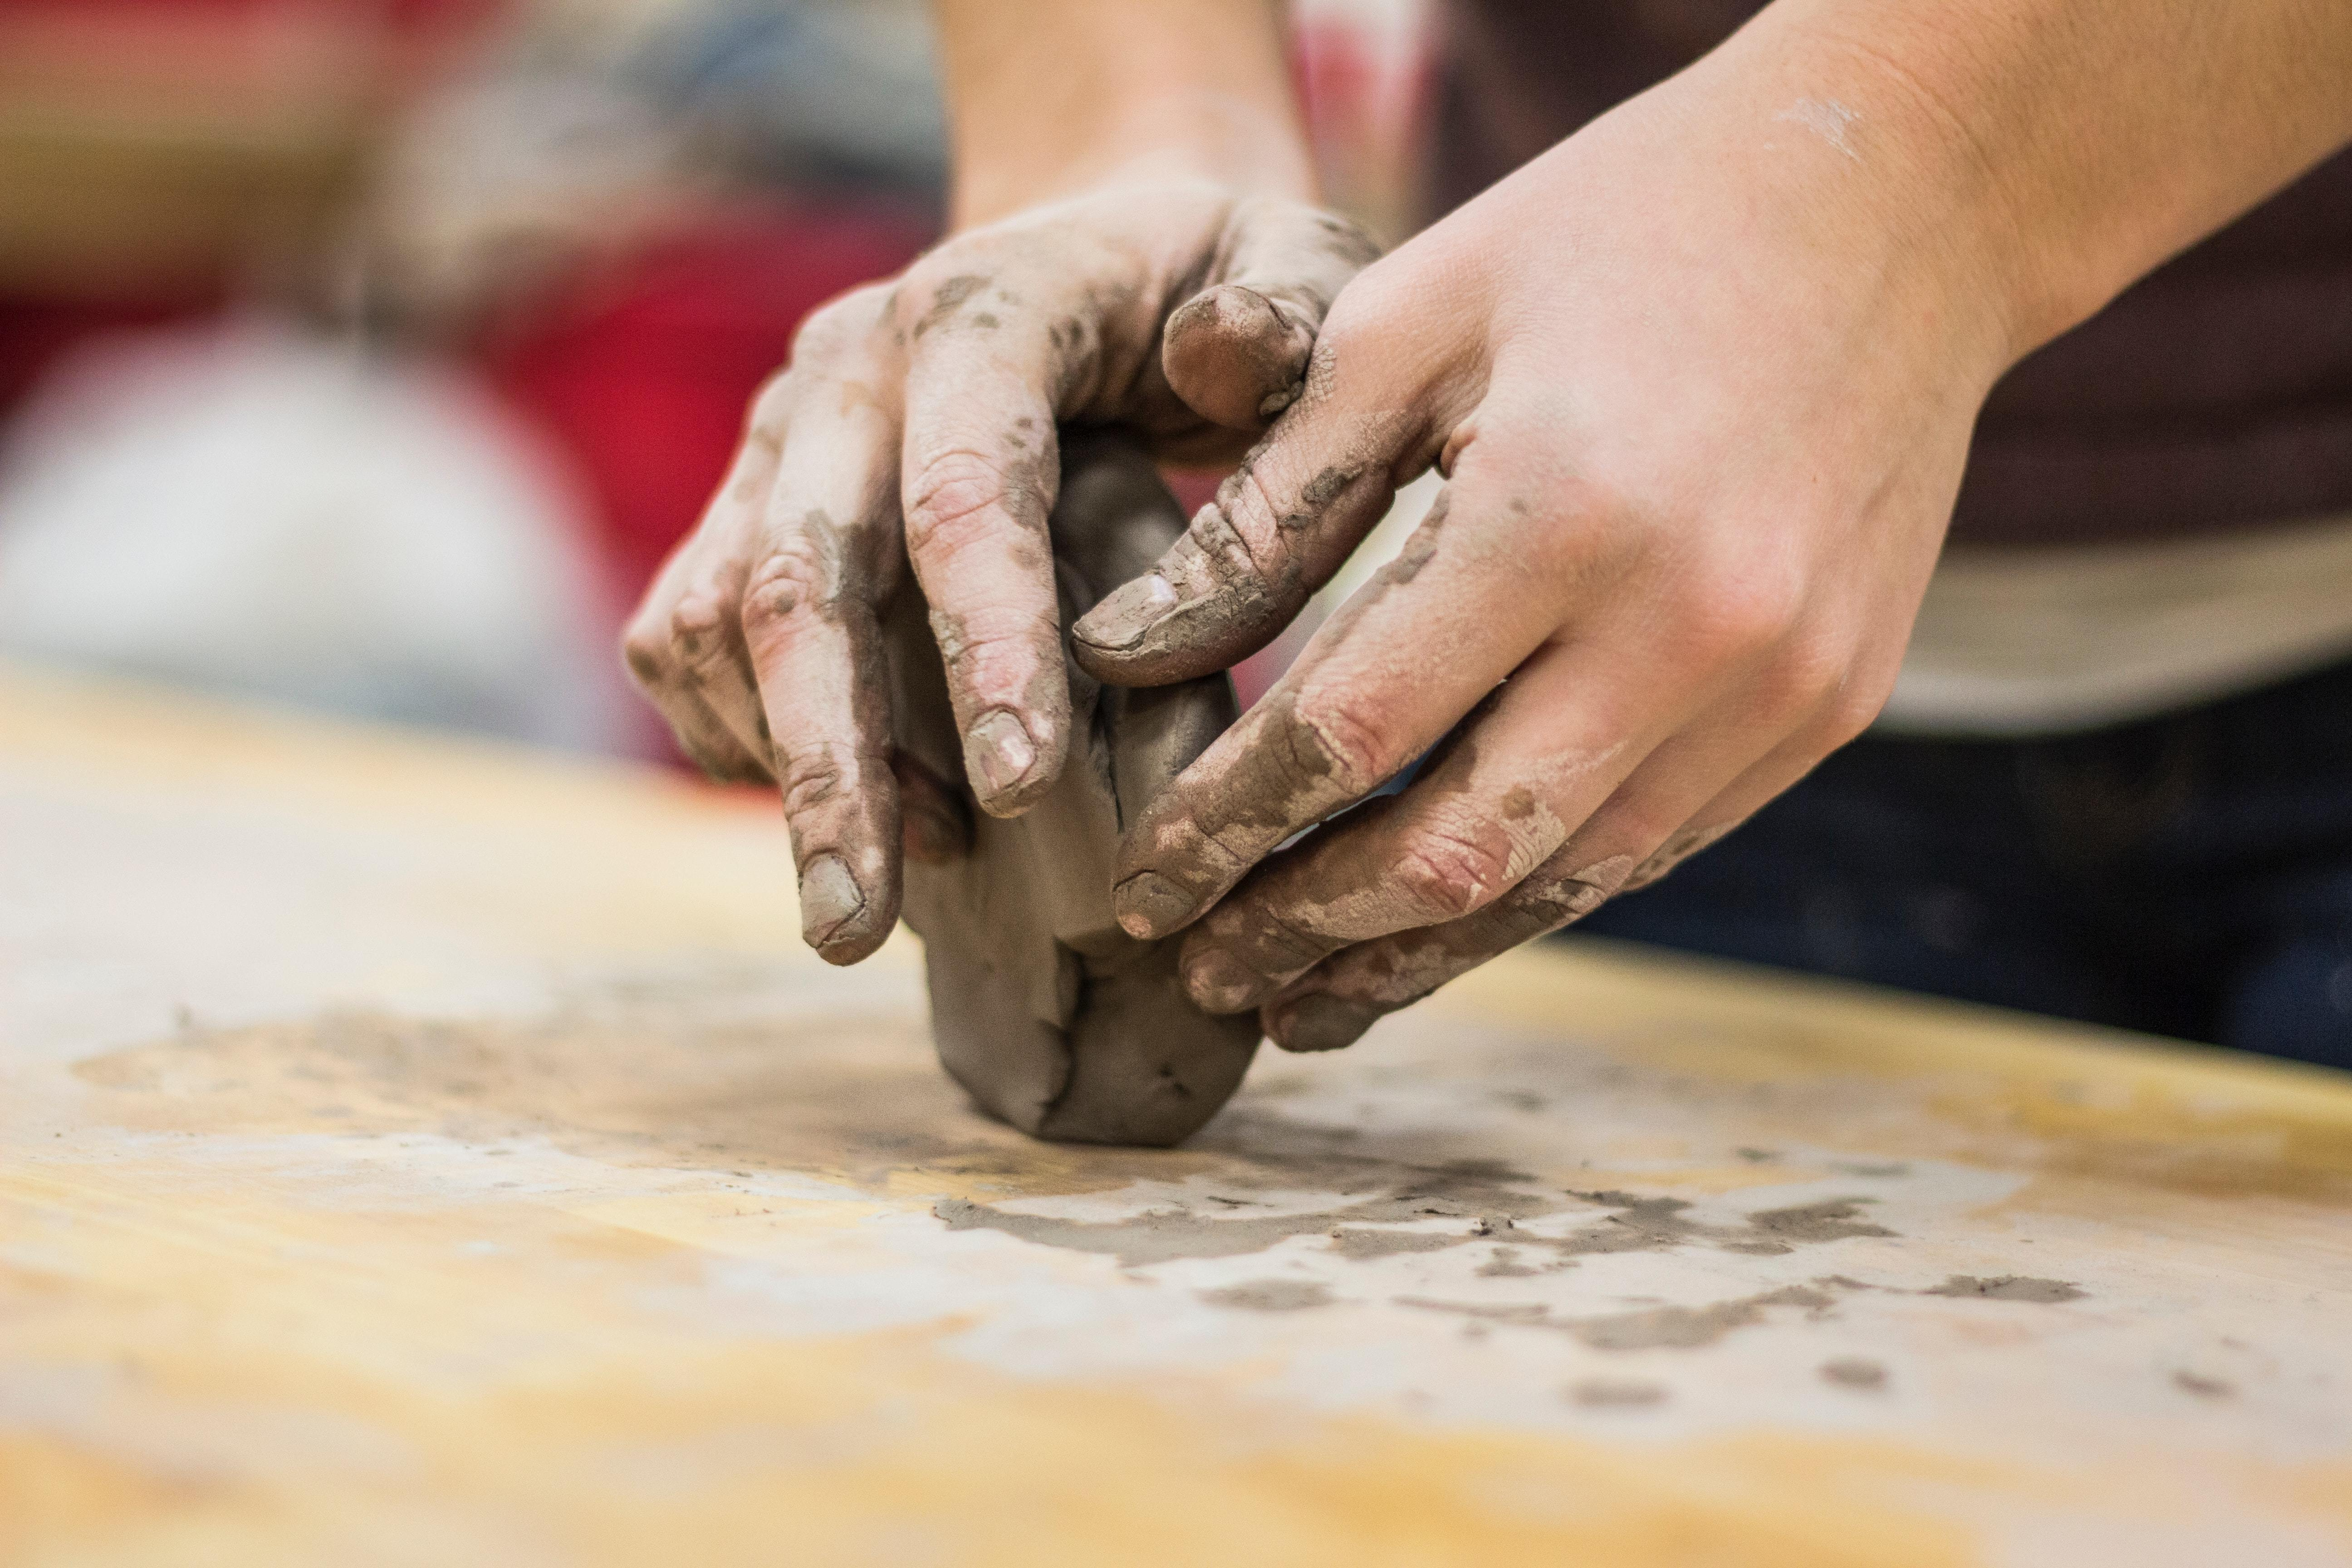 A pair of hands work with a lump of clay on a wooden surface